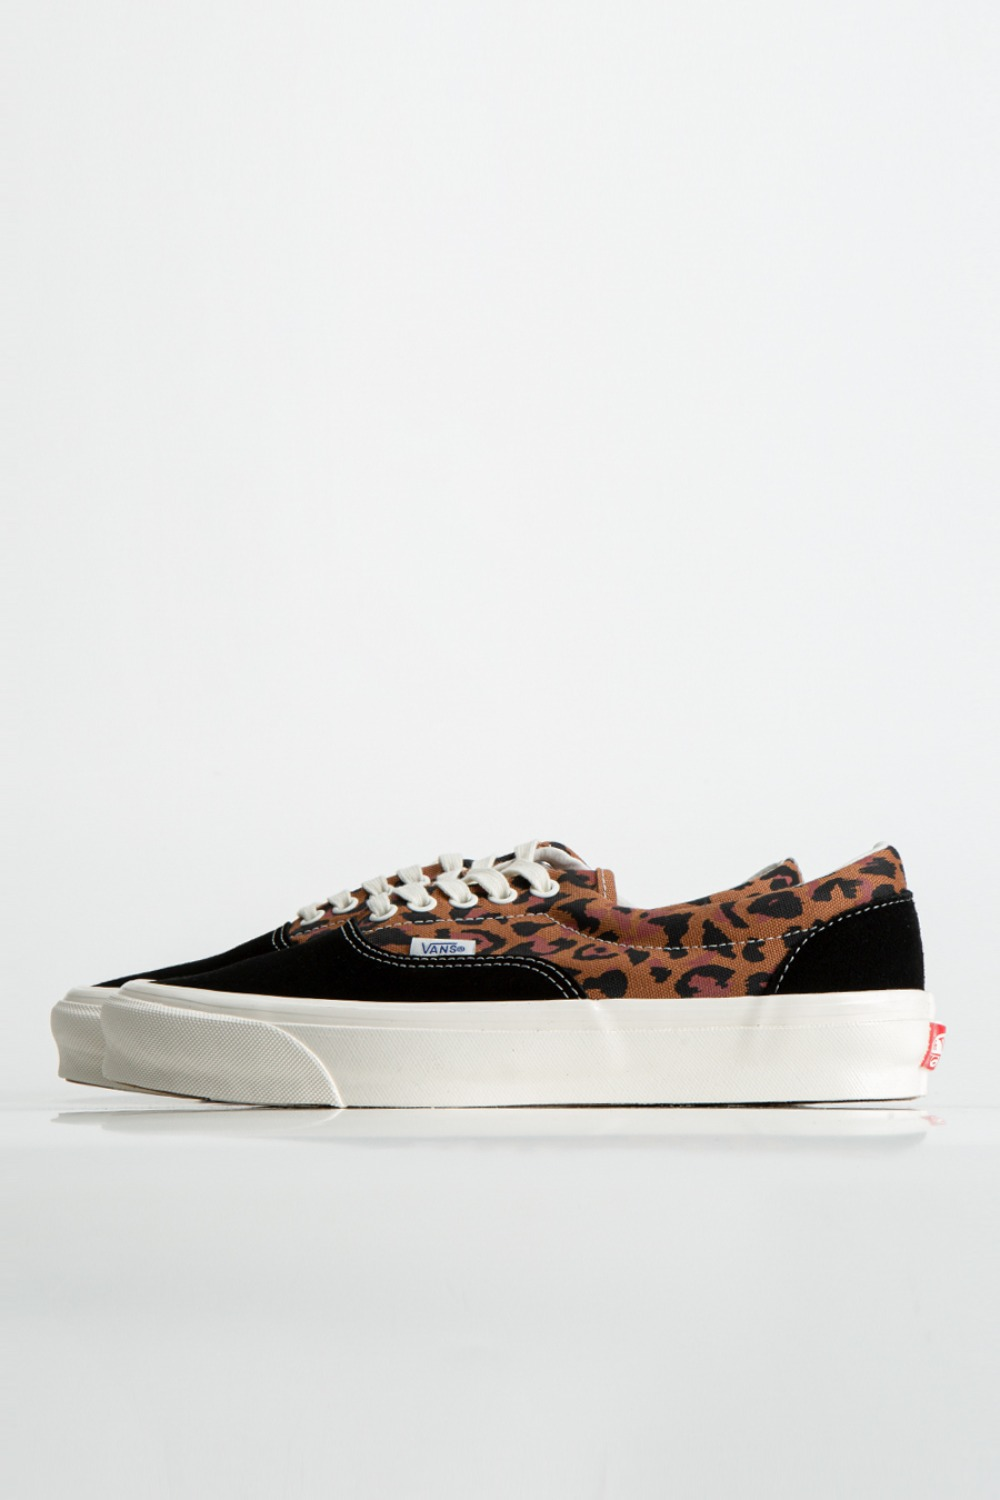 OG ERA LX(SUEDE/CANVAS)LEOPARD BLACK/MARSHMALLOW